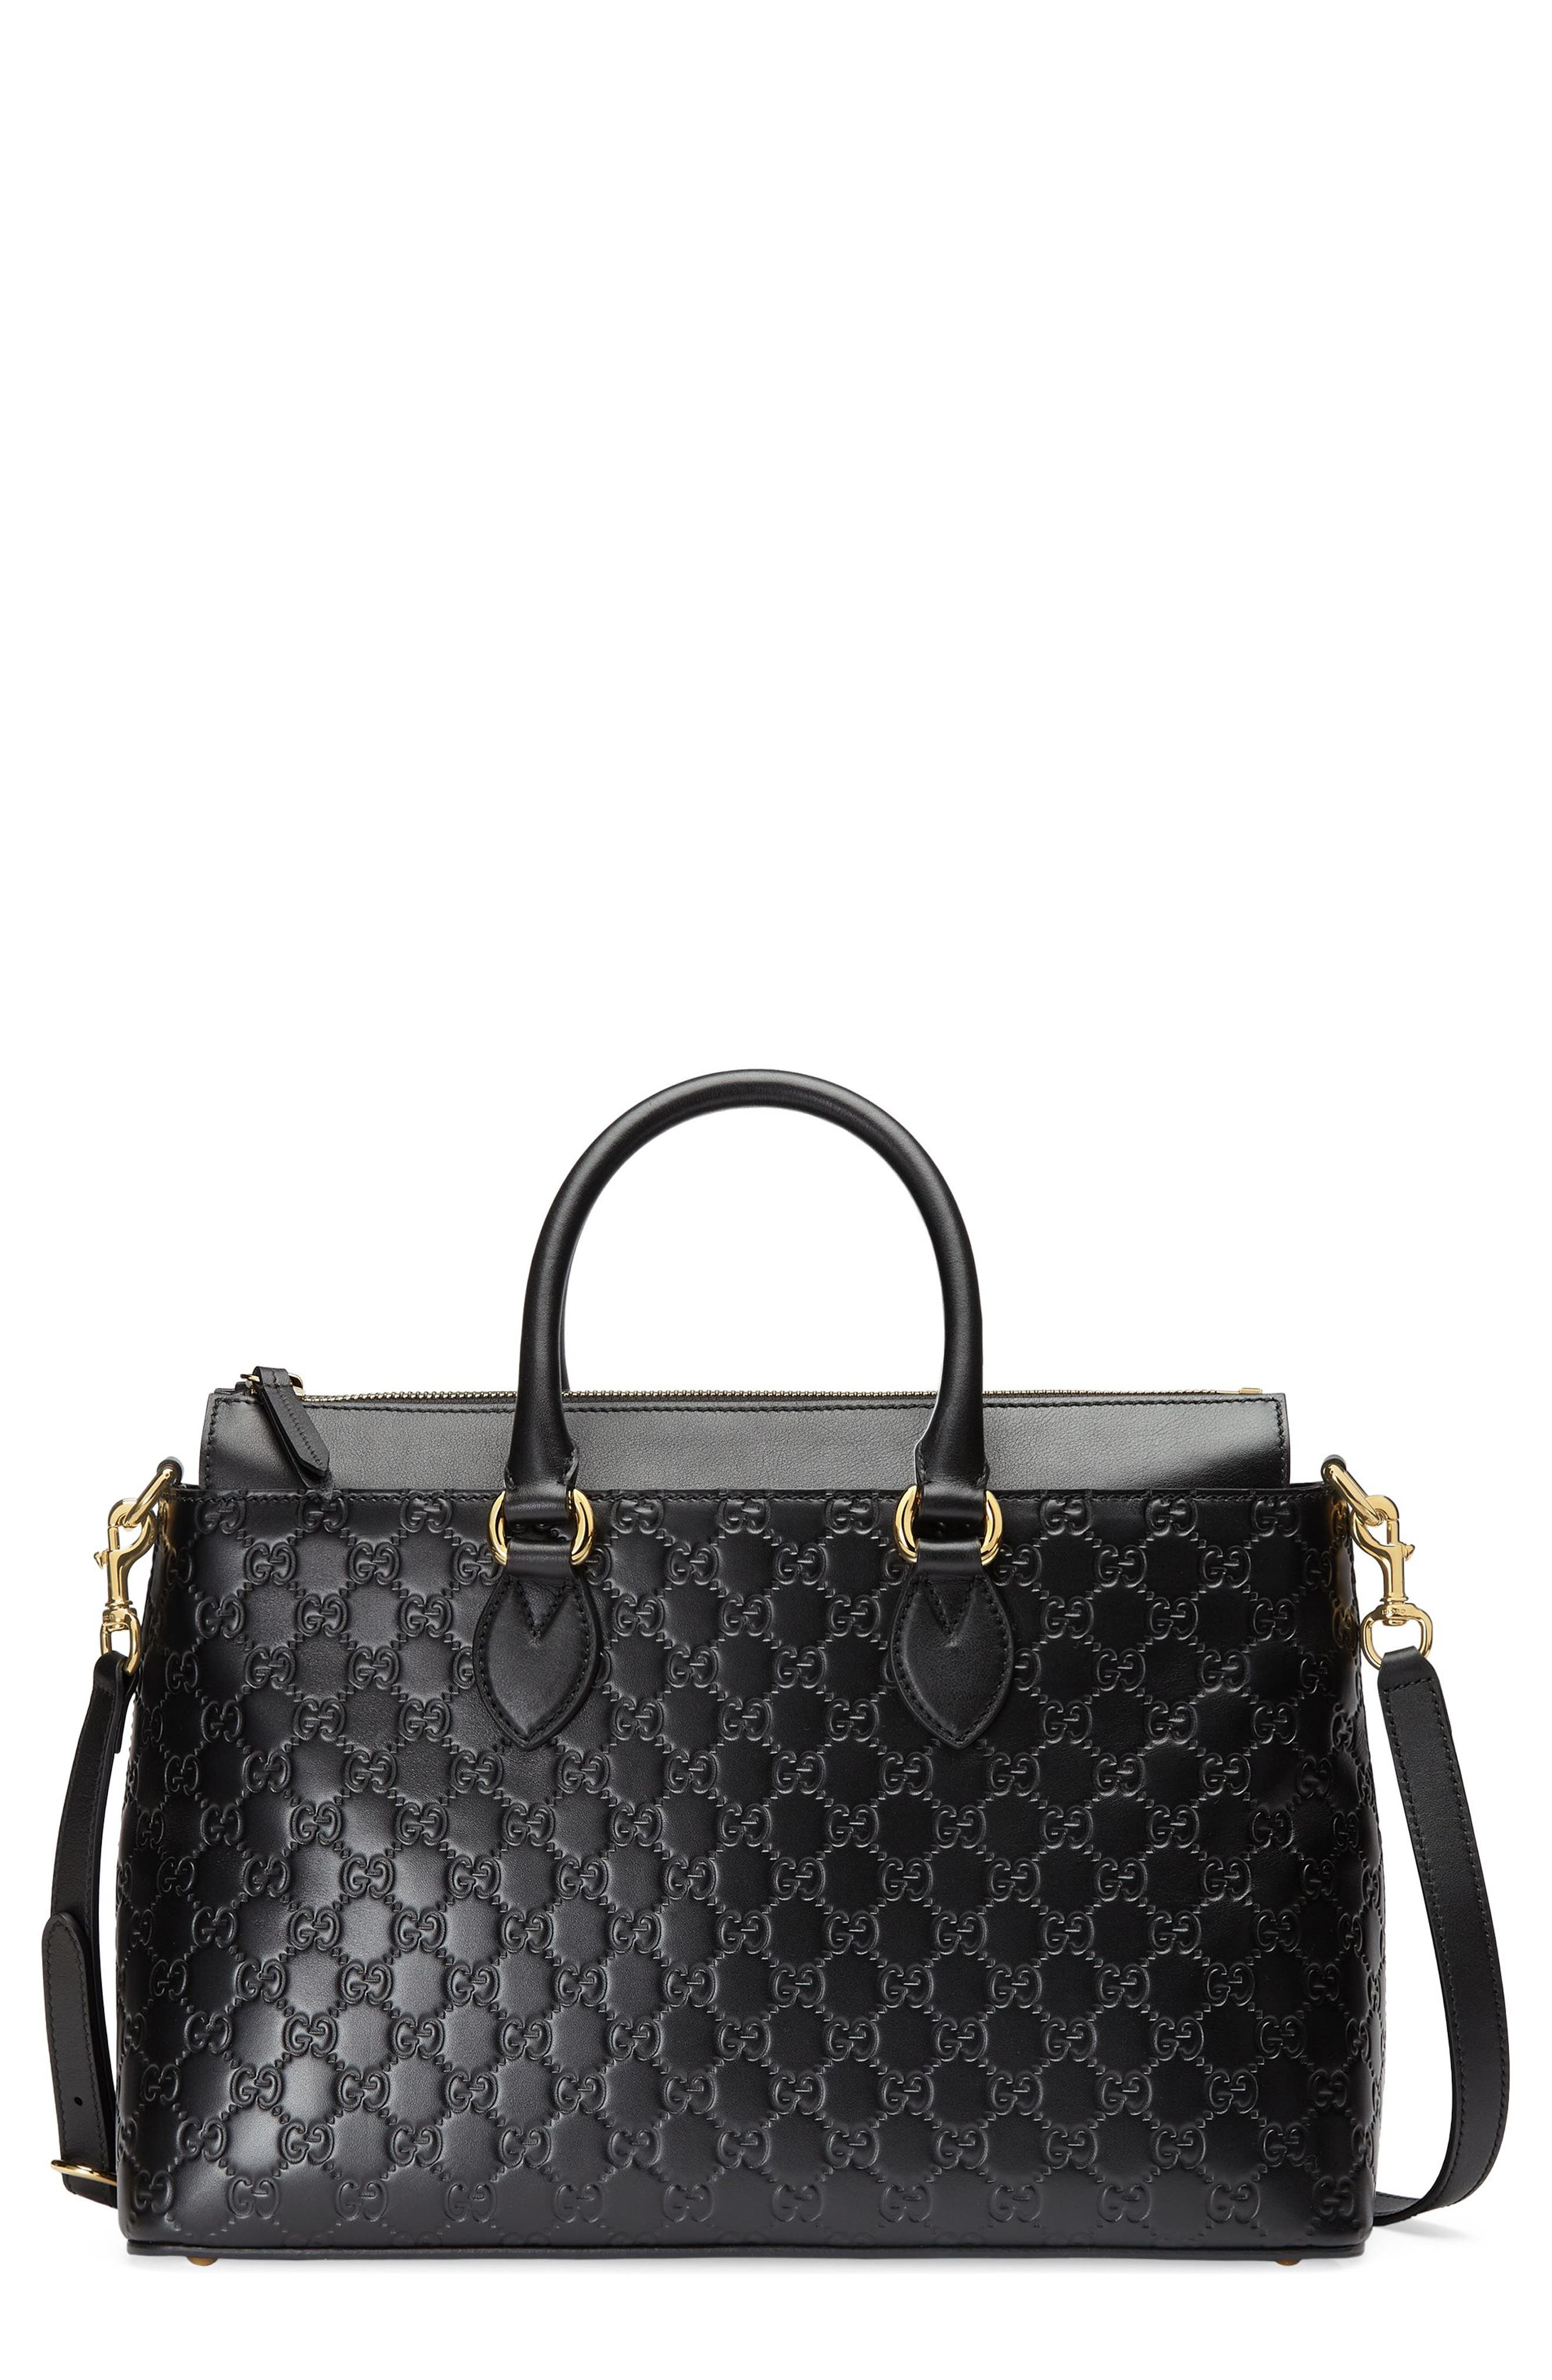 GUCCI Medium Top Handle Signature Leather Tote